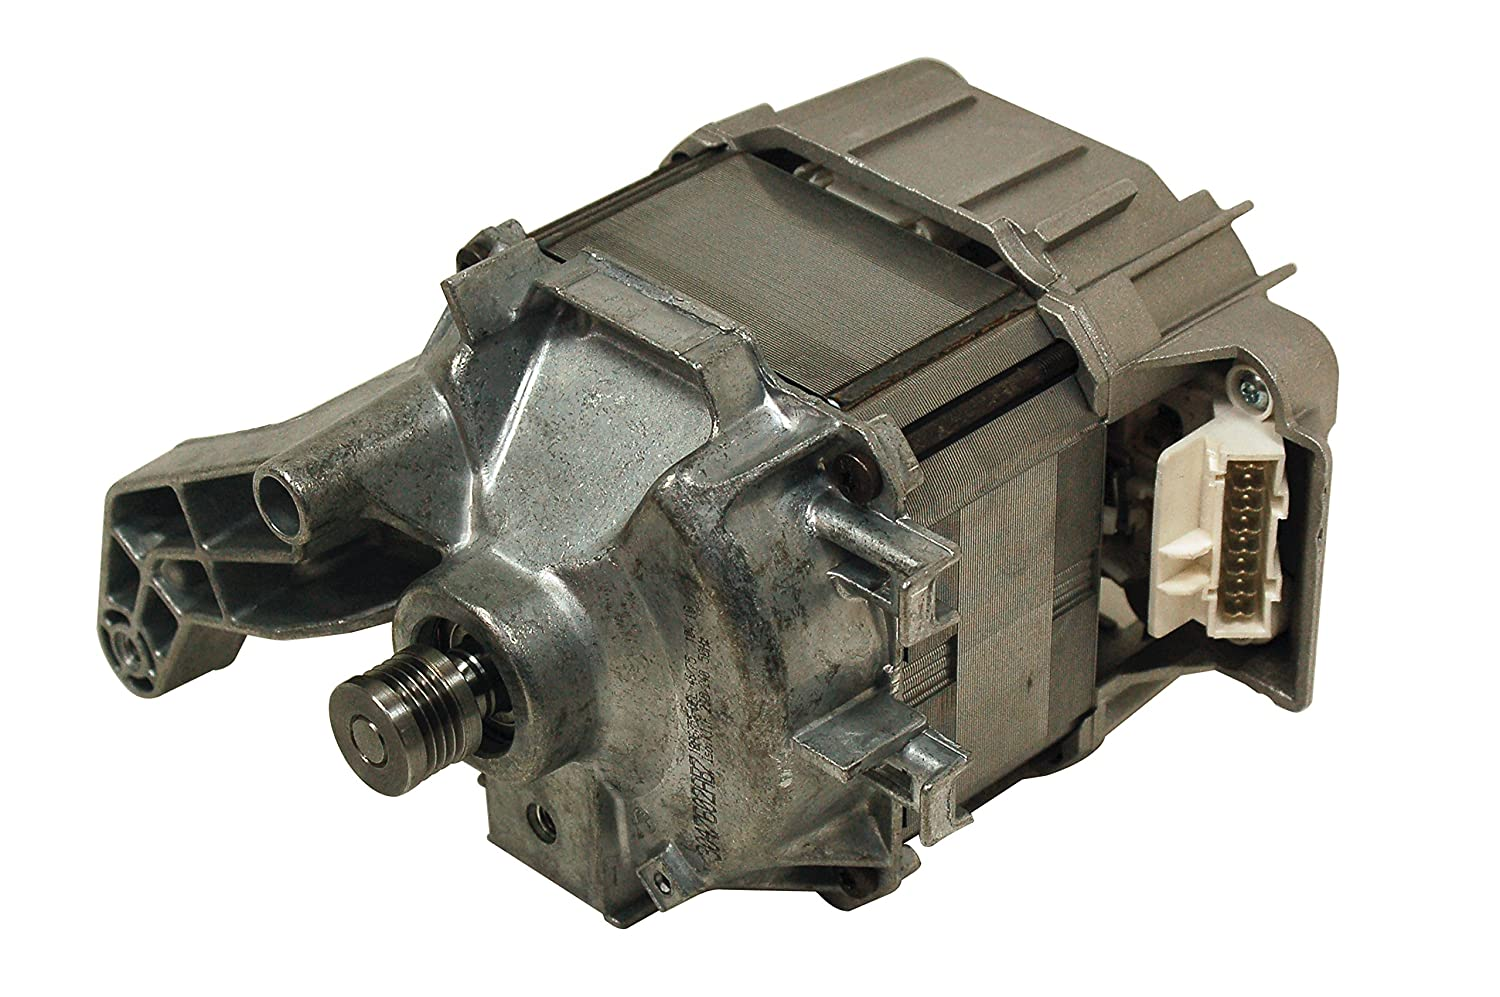 Bosch Siemens Washing Machine Motor Assembly. Genuine part number 141097 141097 Bosch Siemens Washing